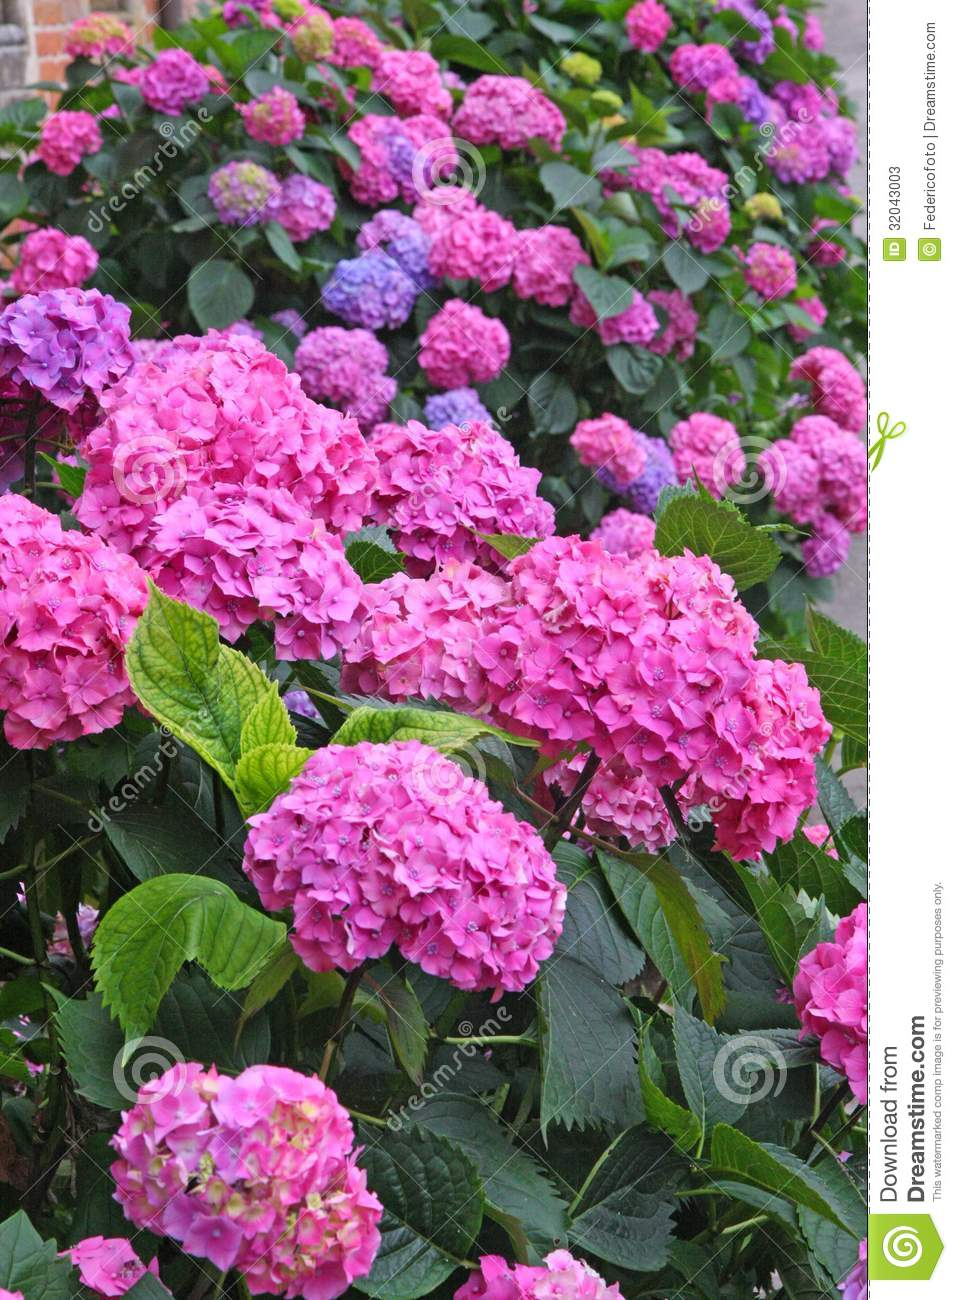 Flower bed full of purple hydrangea flowers and pink and blue stock flower bed full of purple hydrangea flowers and pink and blue mightylinksfo